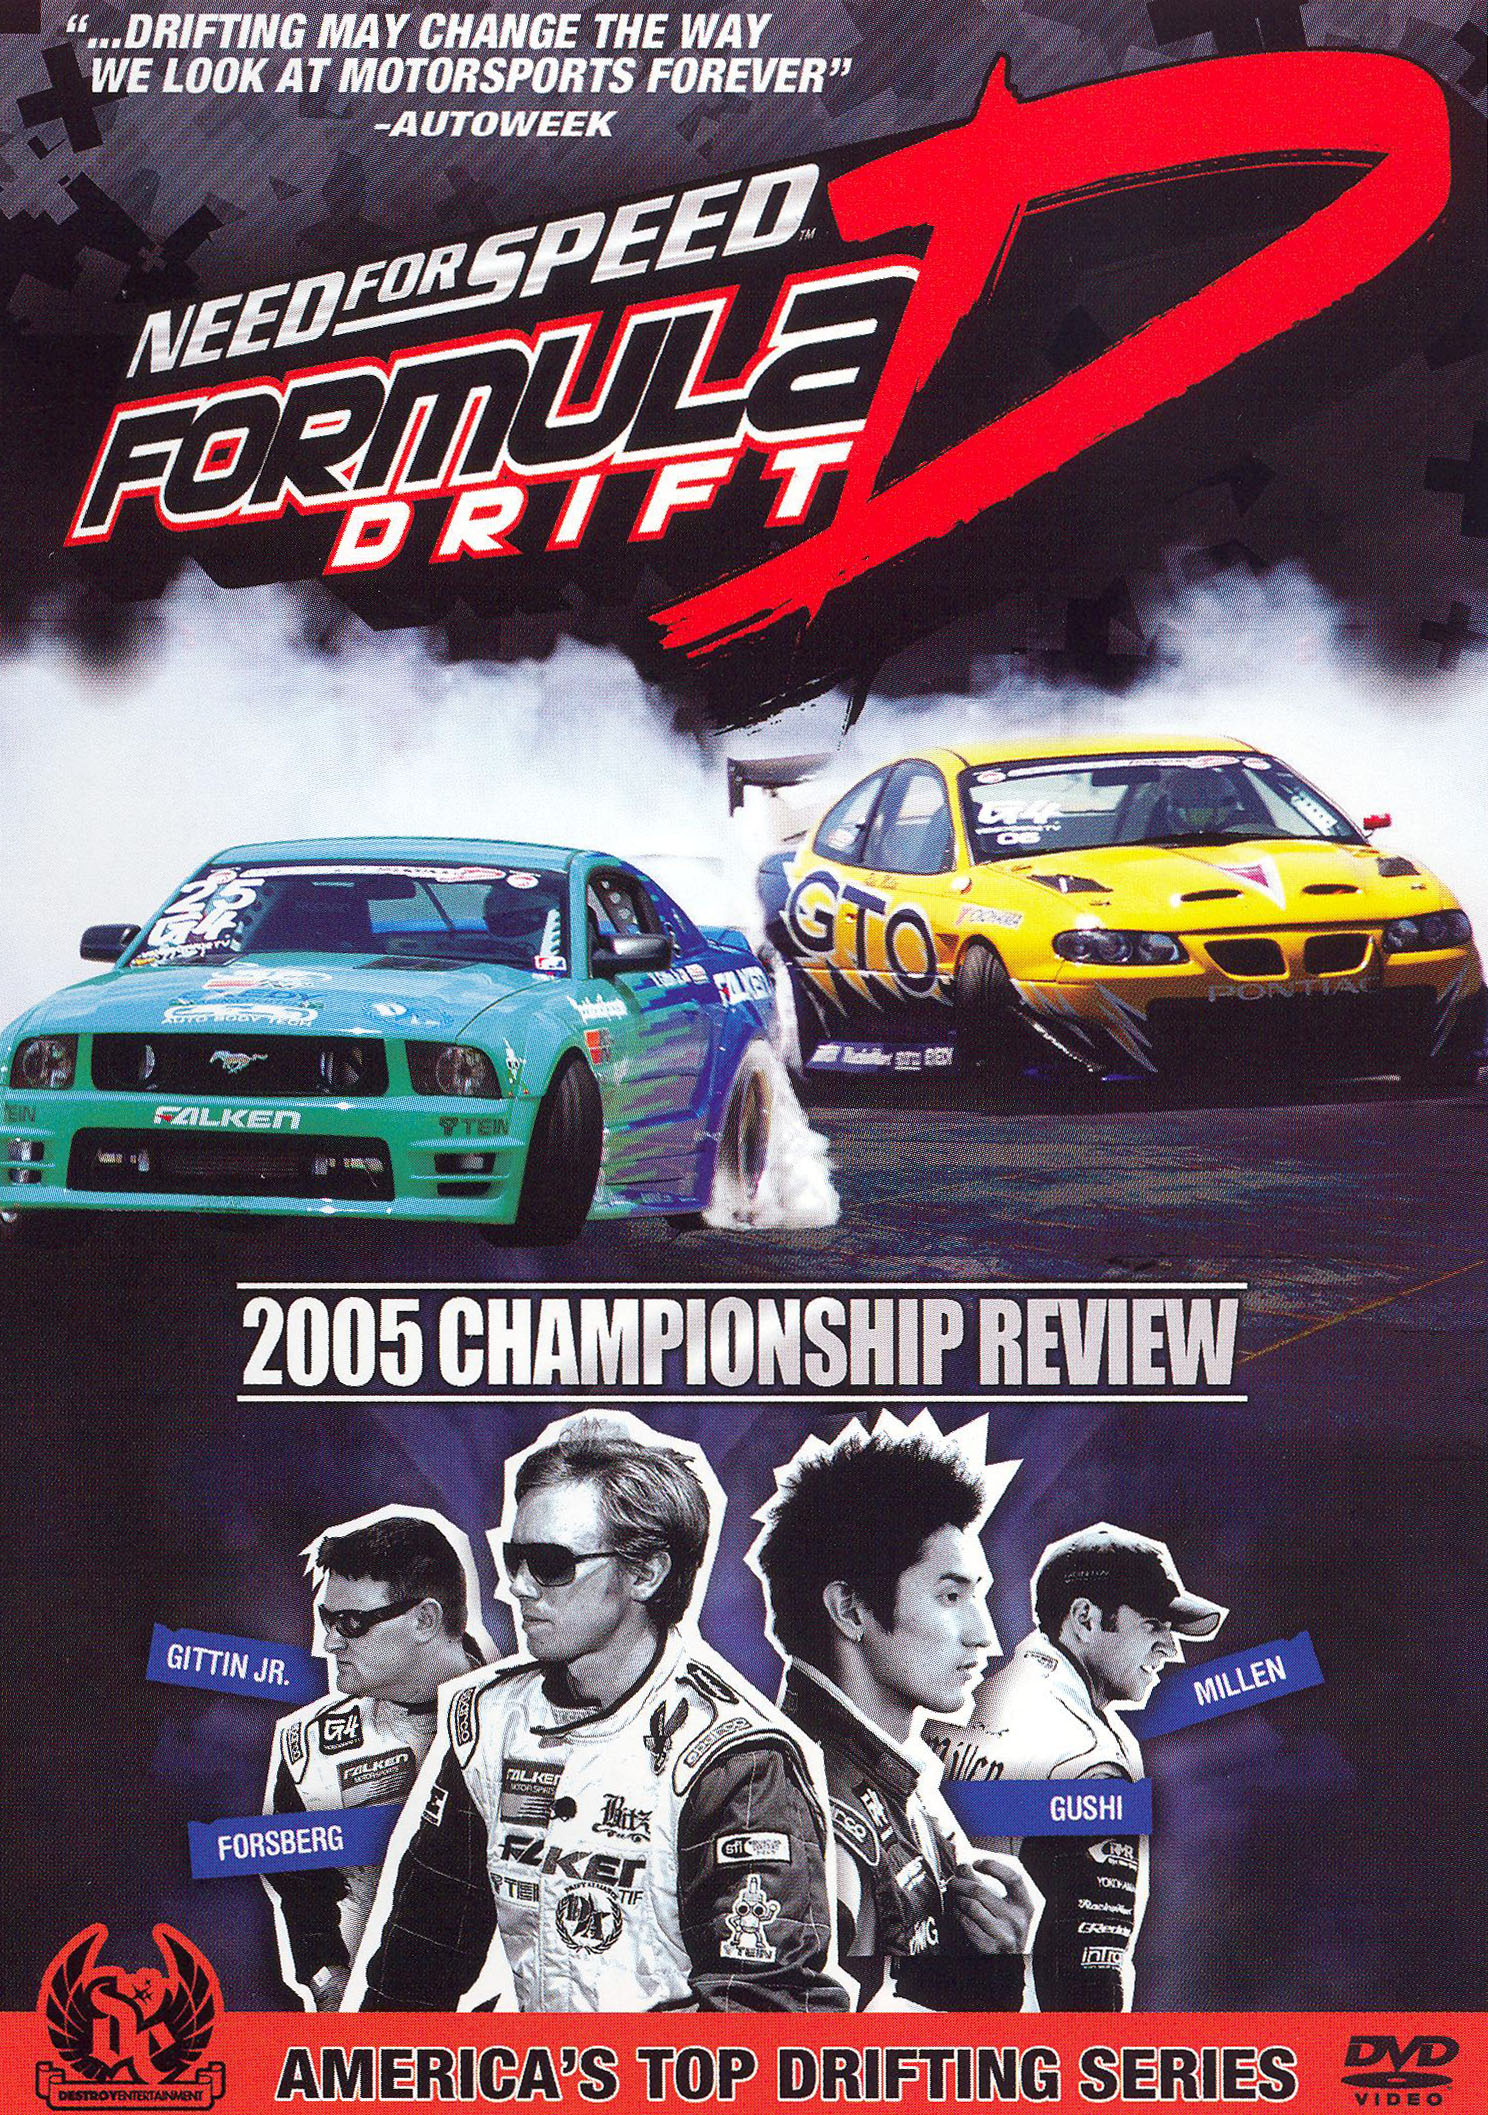 Need for Speed: Formula Drift 2005 Championship Review